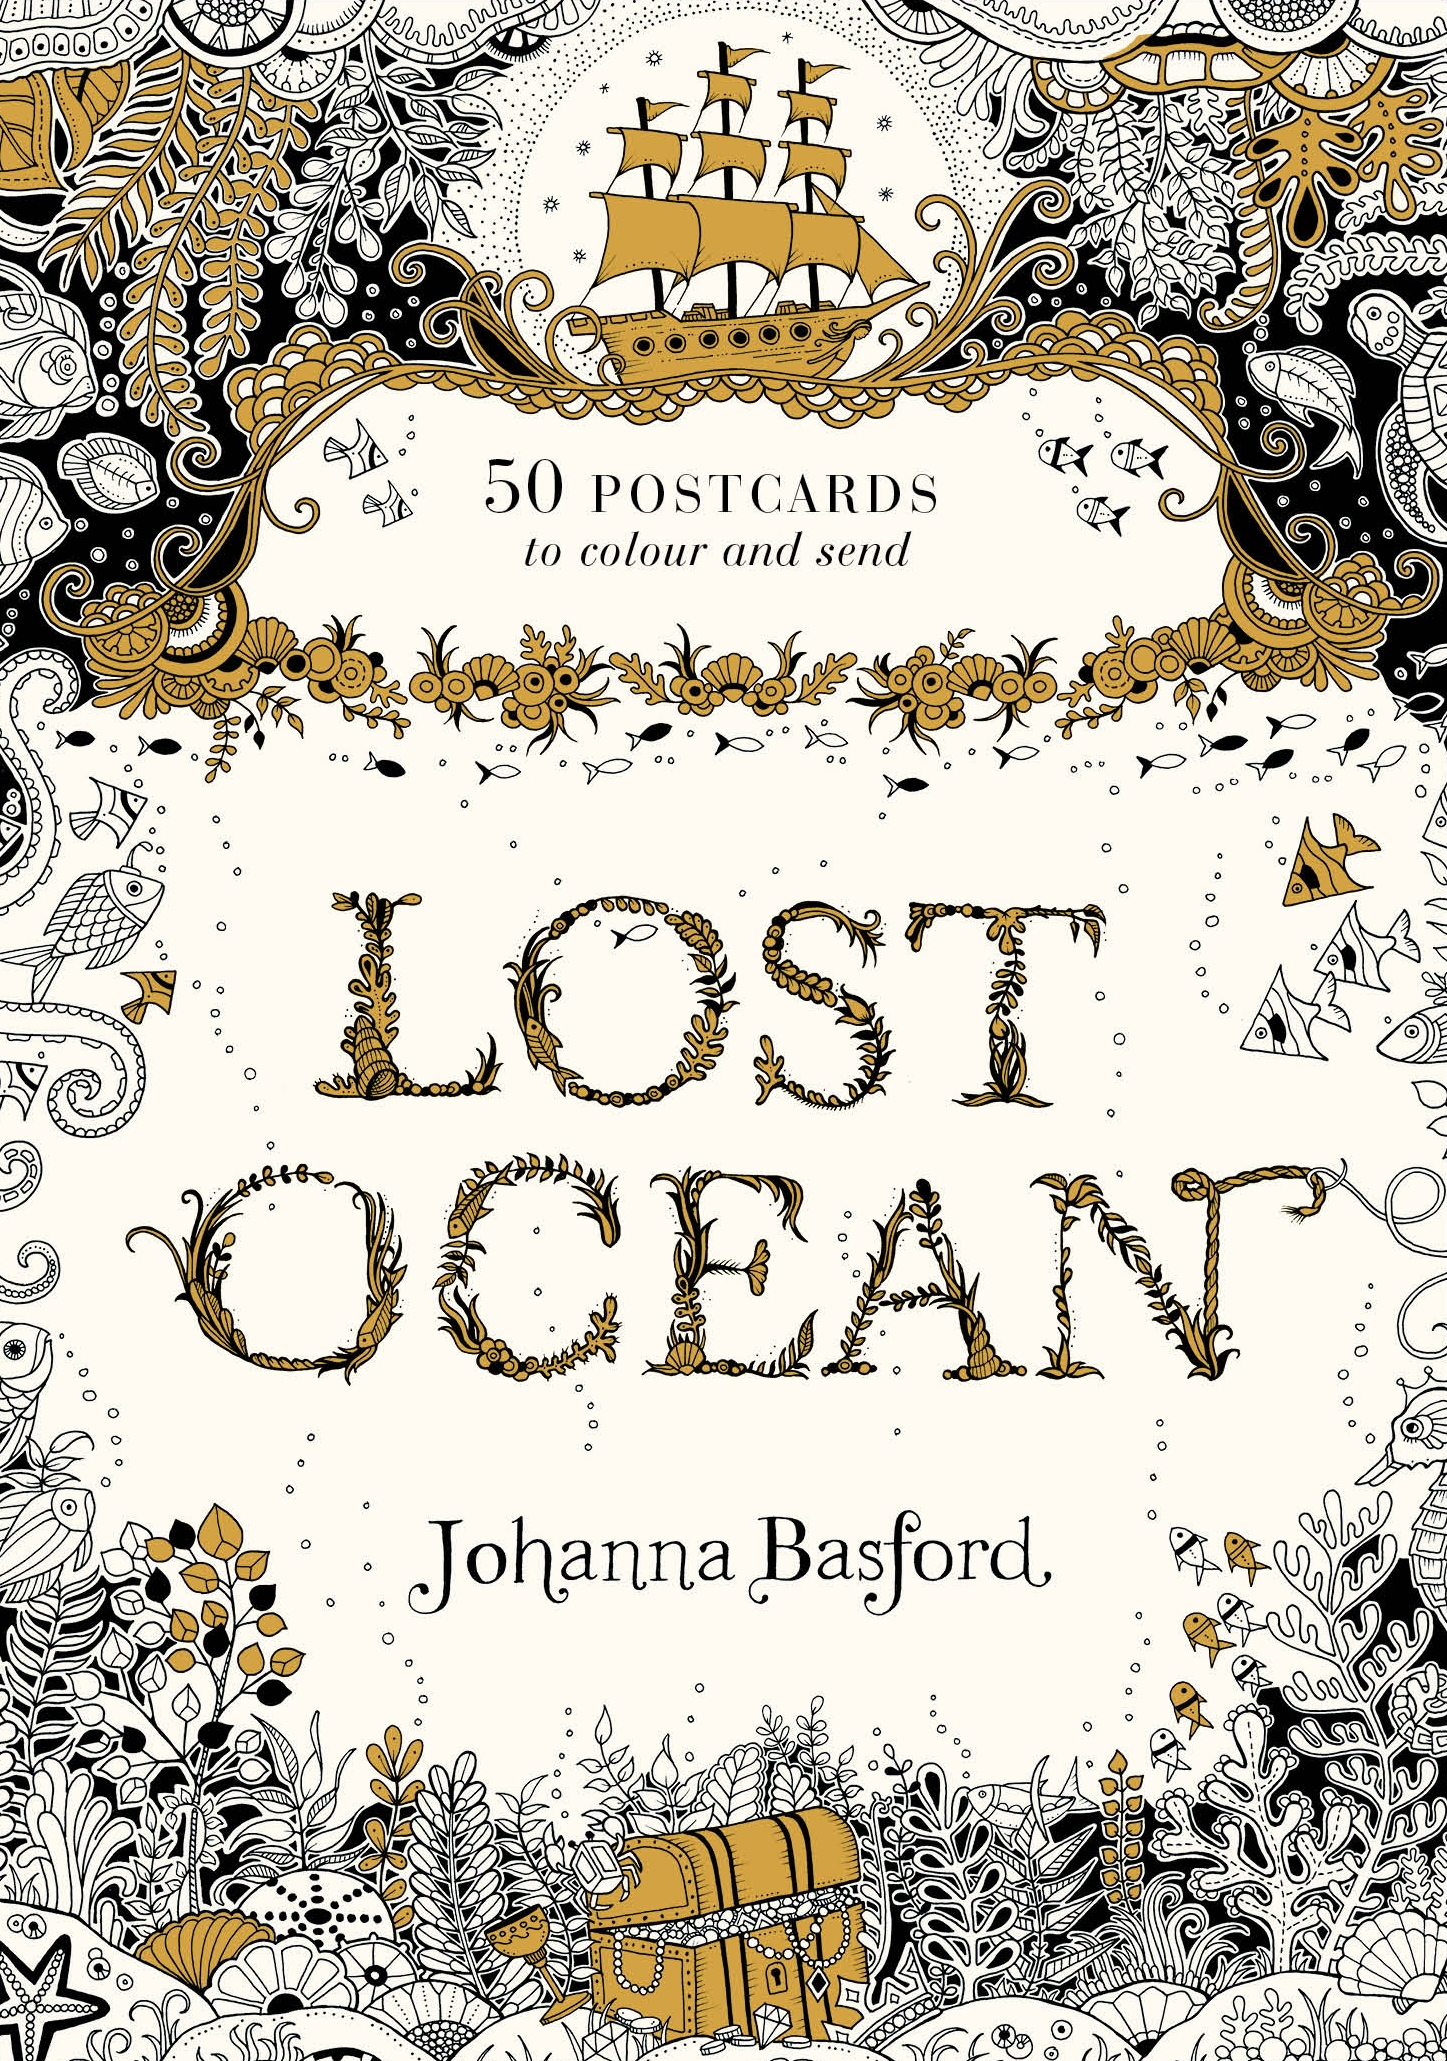 Lost Ocean Postcard Edition: 50 Magical Underwater Postcards to Colour and Complete by Johanna Basford, ISBN: 9780753557372